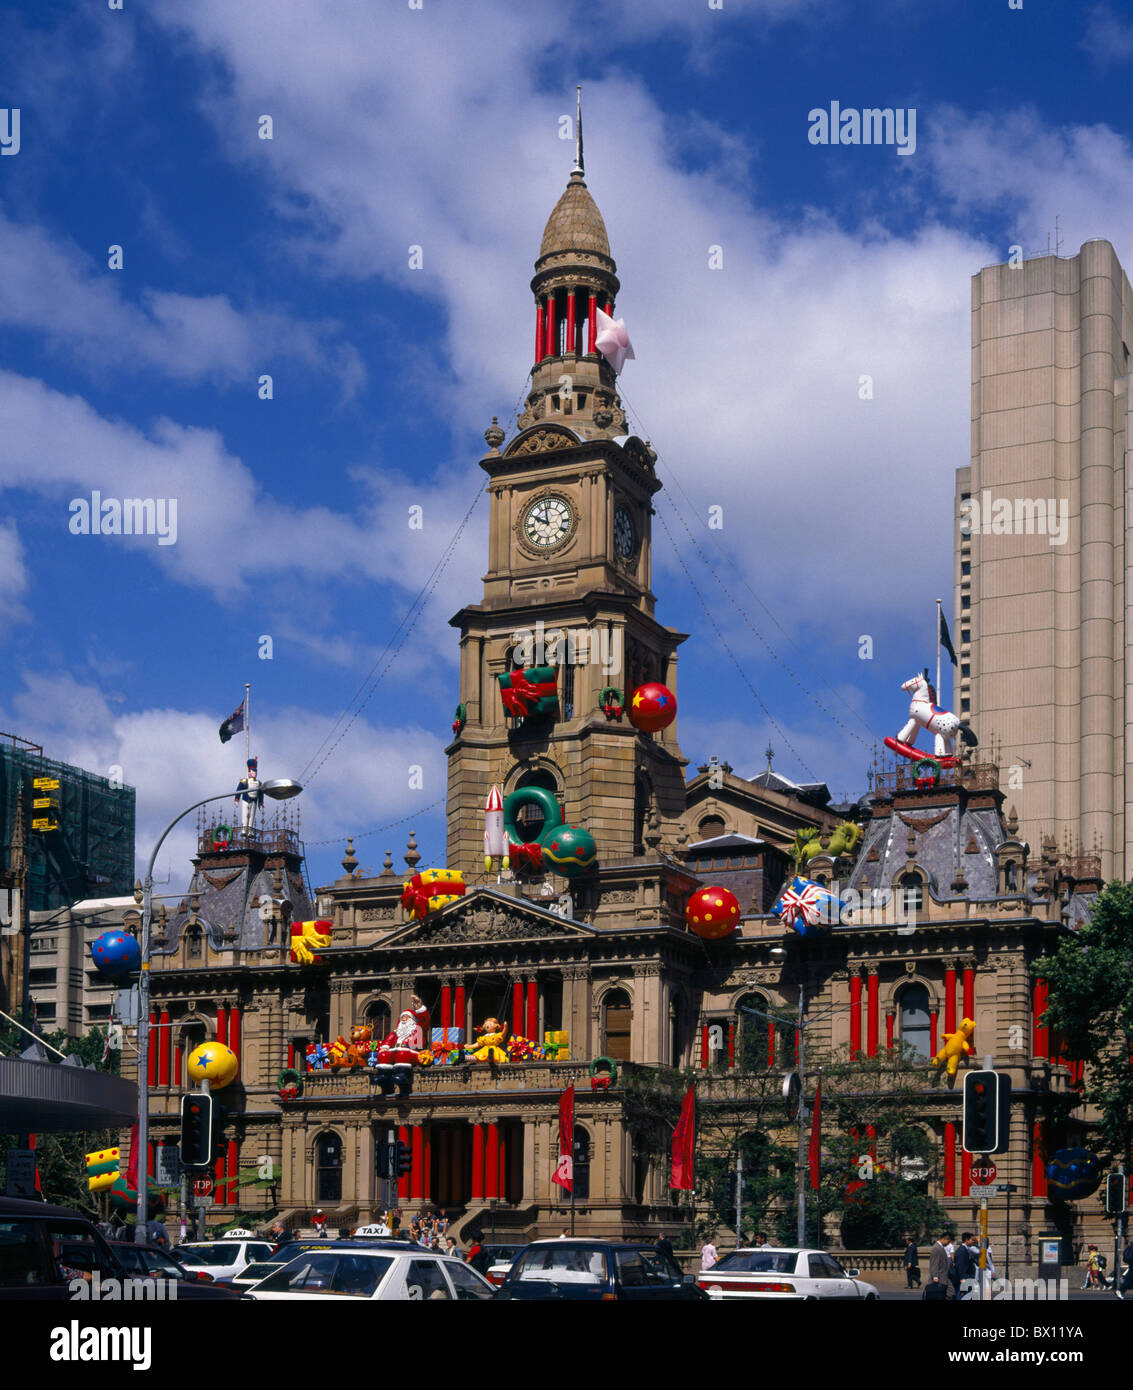 Christmas Decorations Shops Sydney: Australia Sydney Town Resound City Hall Architecture